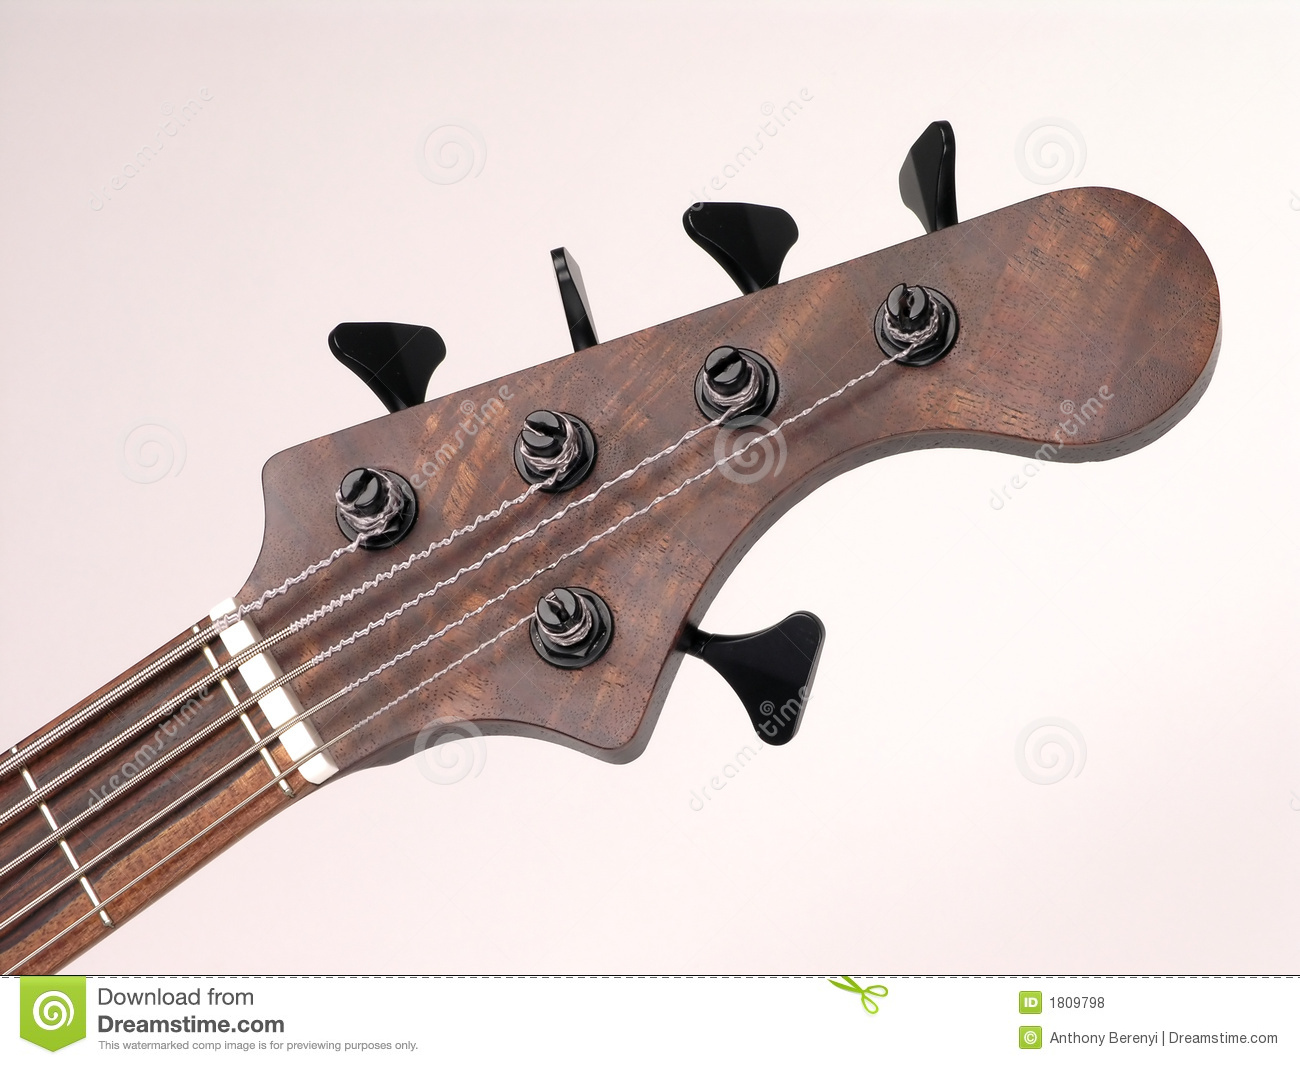 Bass String Headstock : bass guitar headstock royalty free stock photos image 1809798 ~ Vivirlamusica.com Haus und Dekorationen